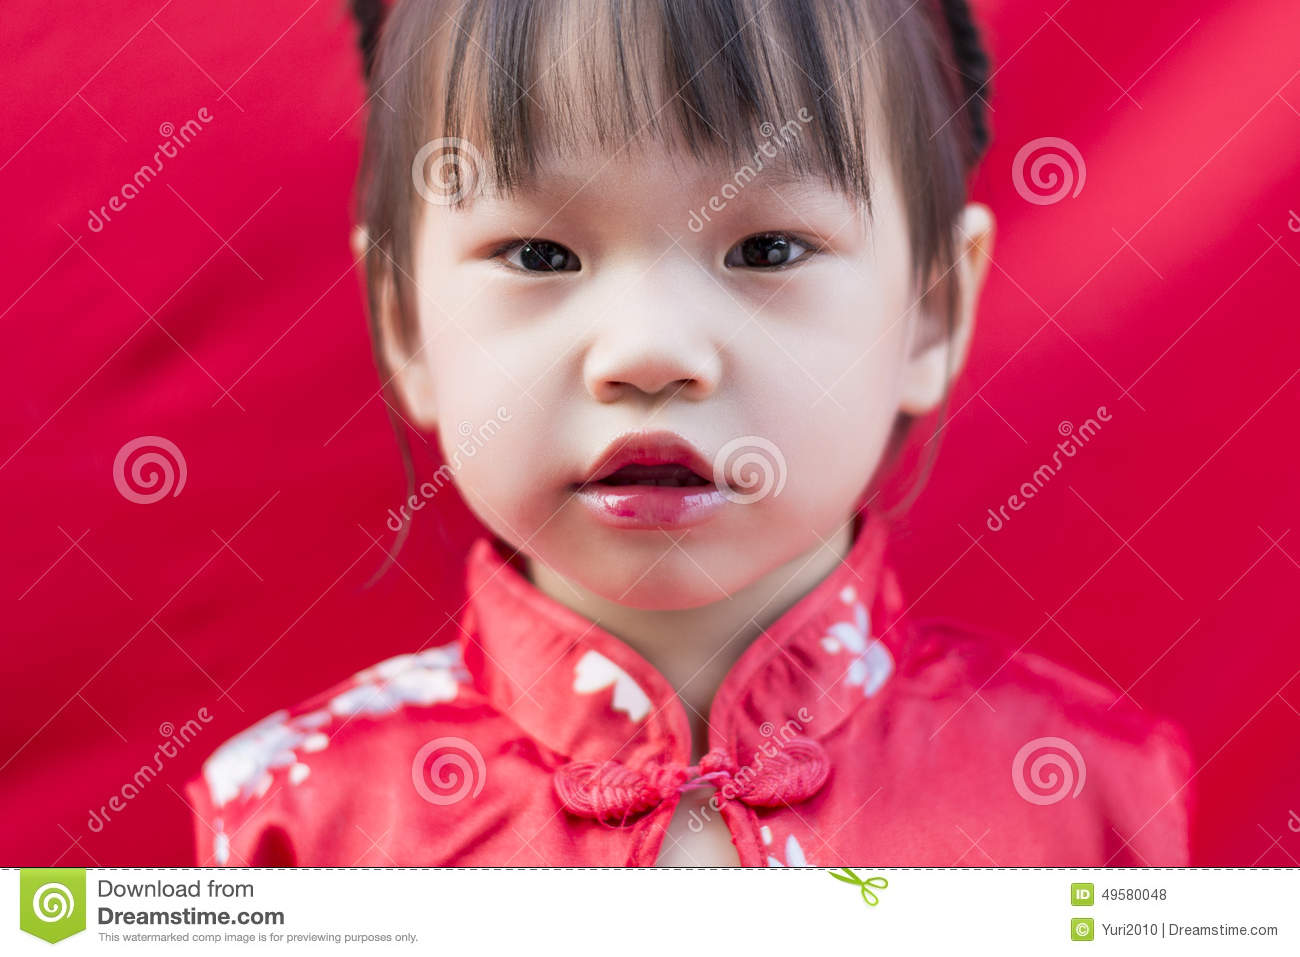 China girl in traditional chinese red tang suit greeting stock photo download china girl in traditional chinese red tang suit greeting stock photo image of mandarin m4hsunfo